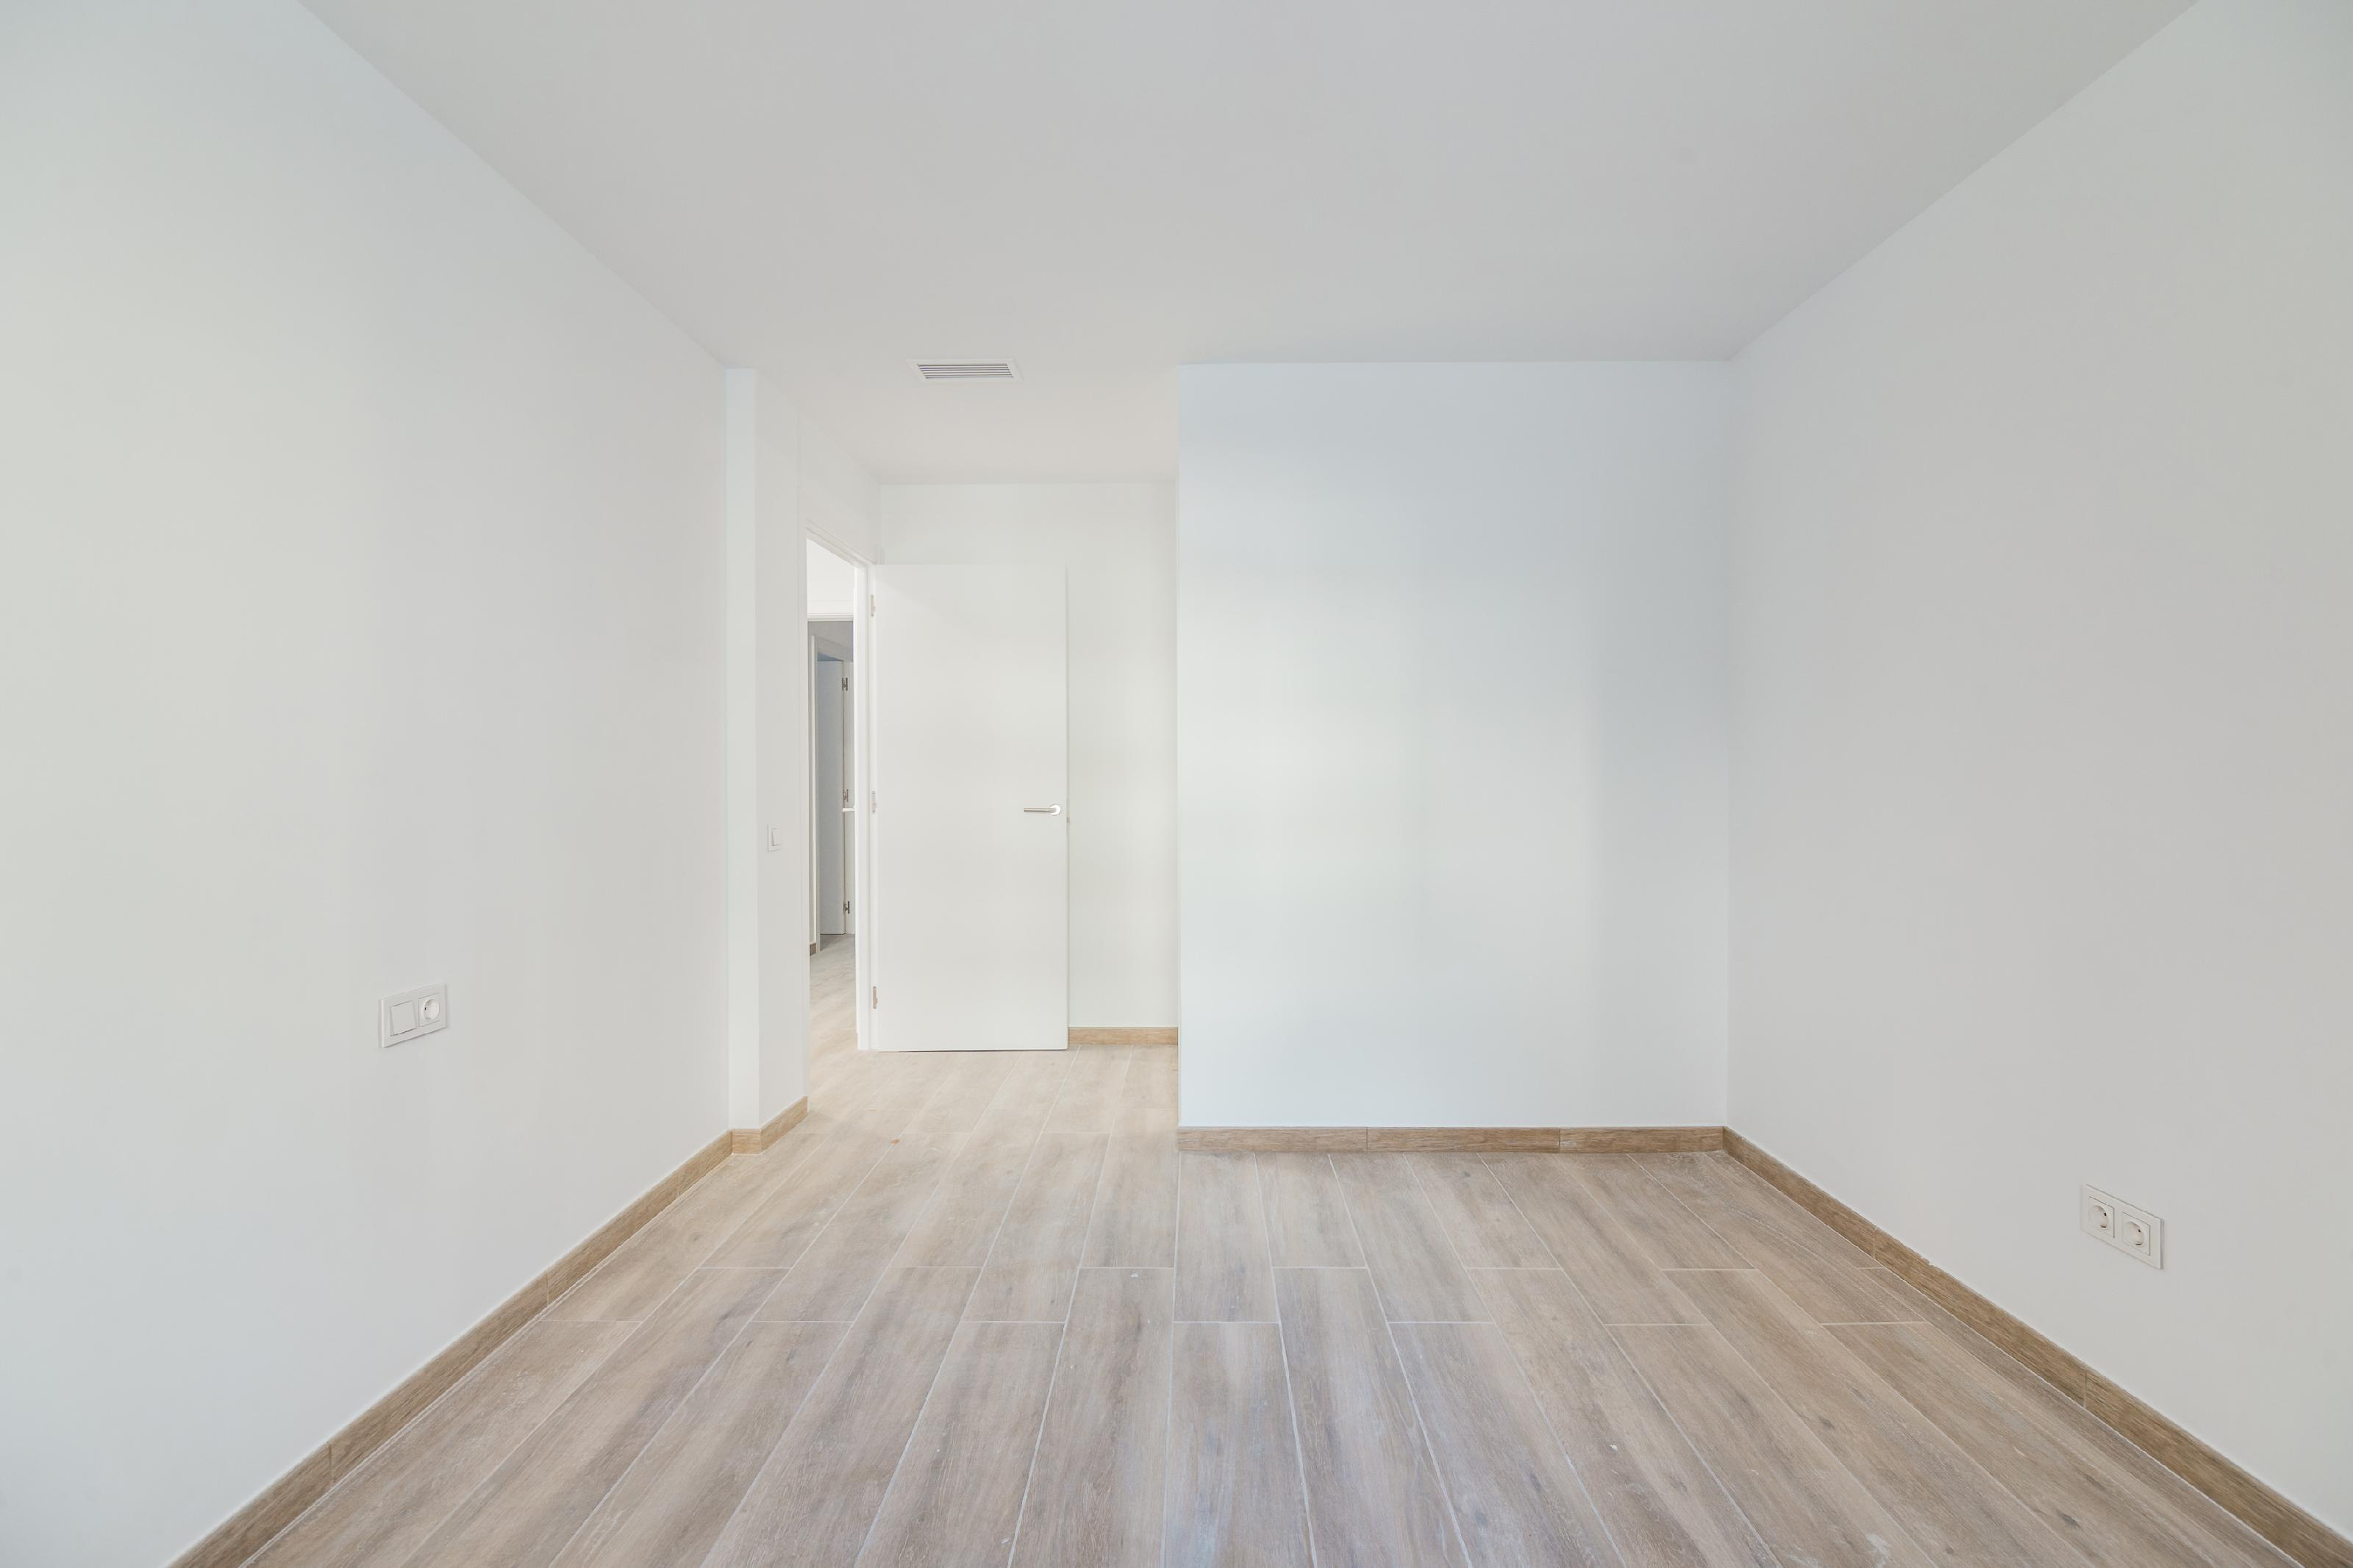 220653 Penthouse for sale in Sarrià-Sant Gervasi, Sant Gervasi-Galvany 13